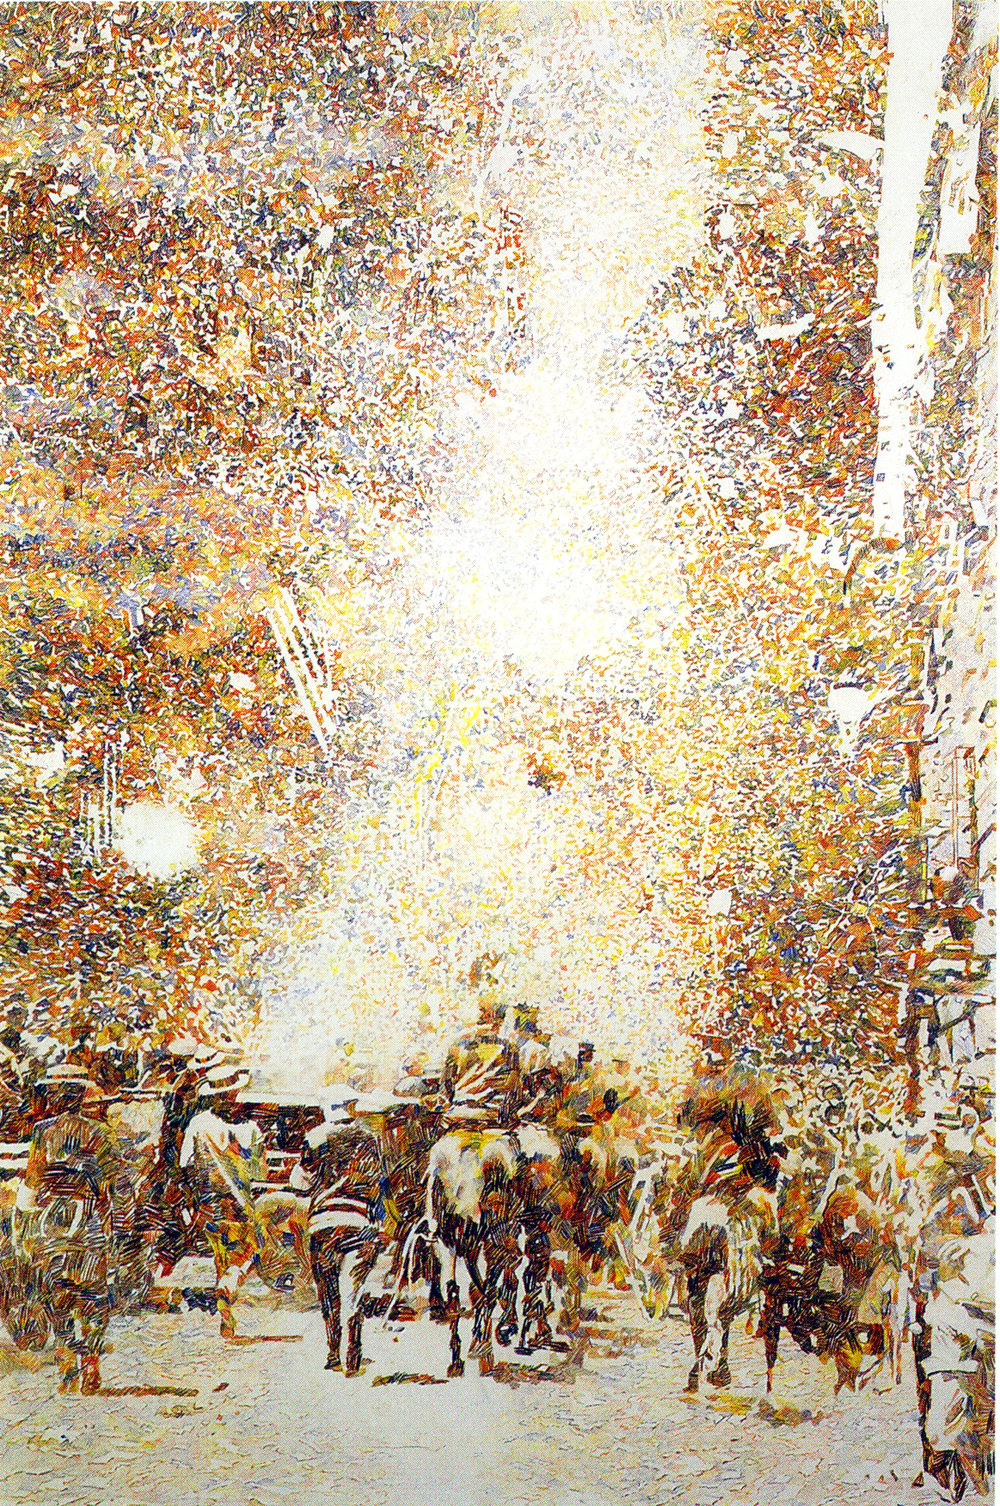 Ticker Tape Parade II, 2001-2002, Colored pencil on paper, 60 x 40 inches, Neuberger Berman Collection